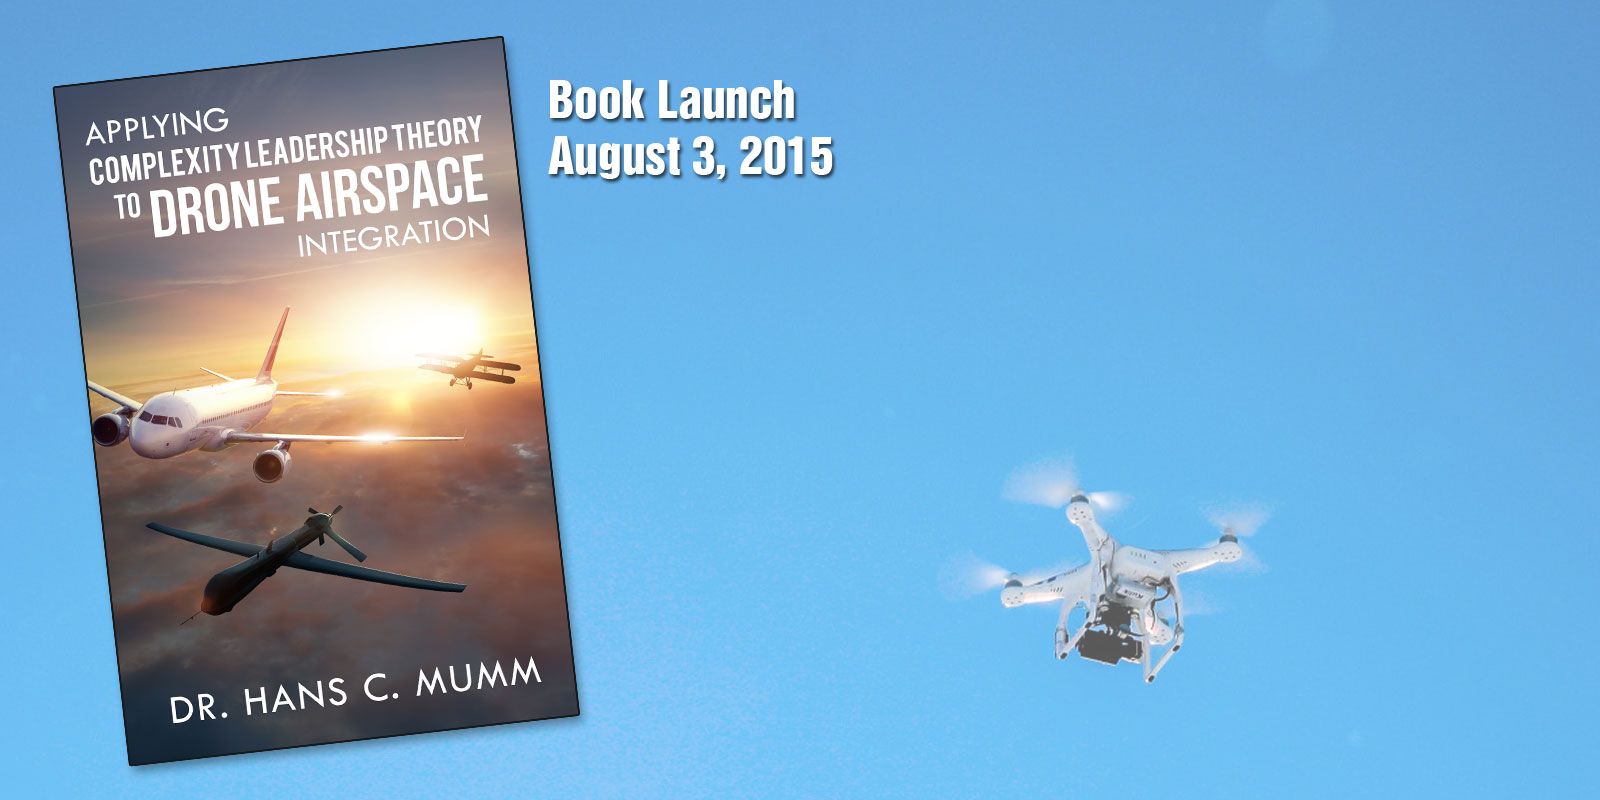 Applying Complexity Leadership Theory to Drone Airspace Integration Book Release Announcement